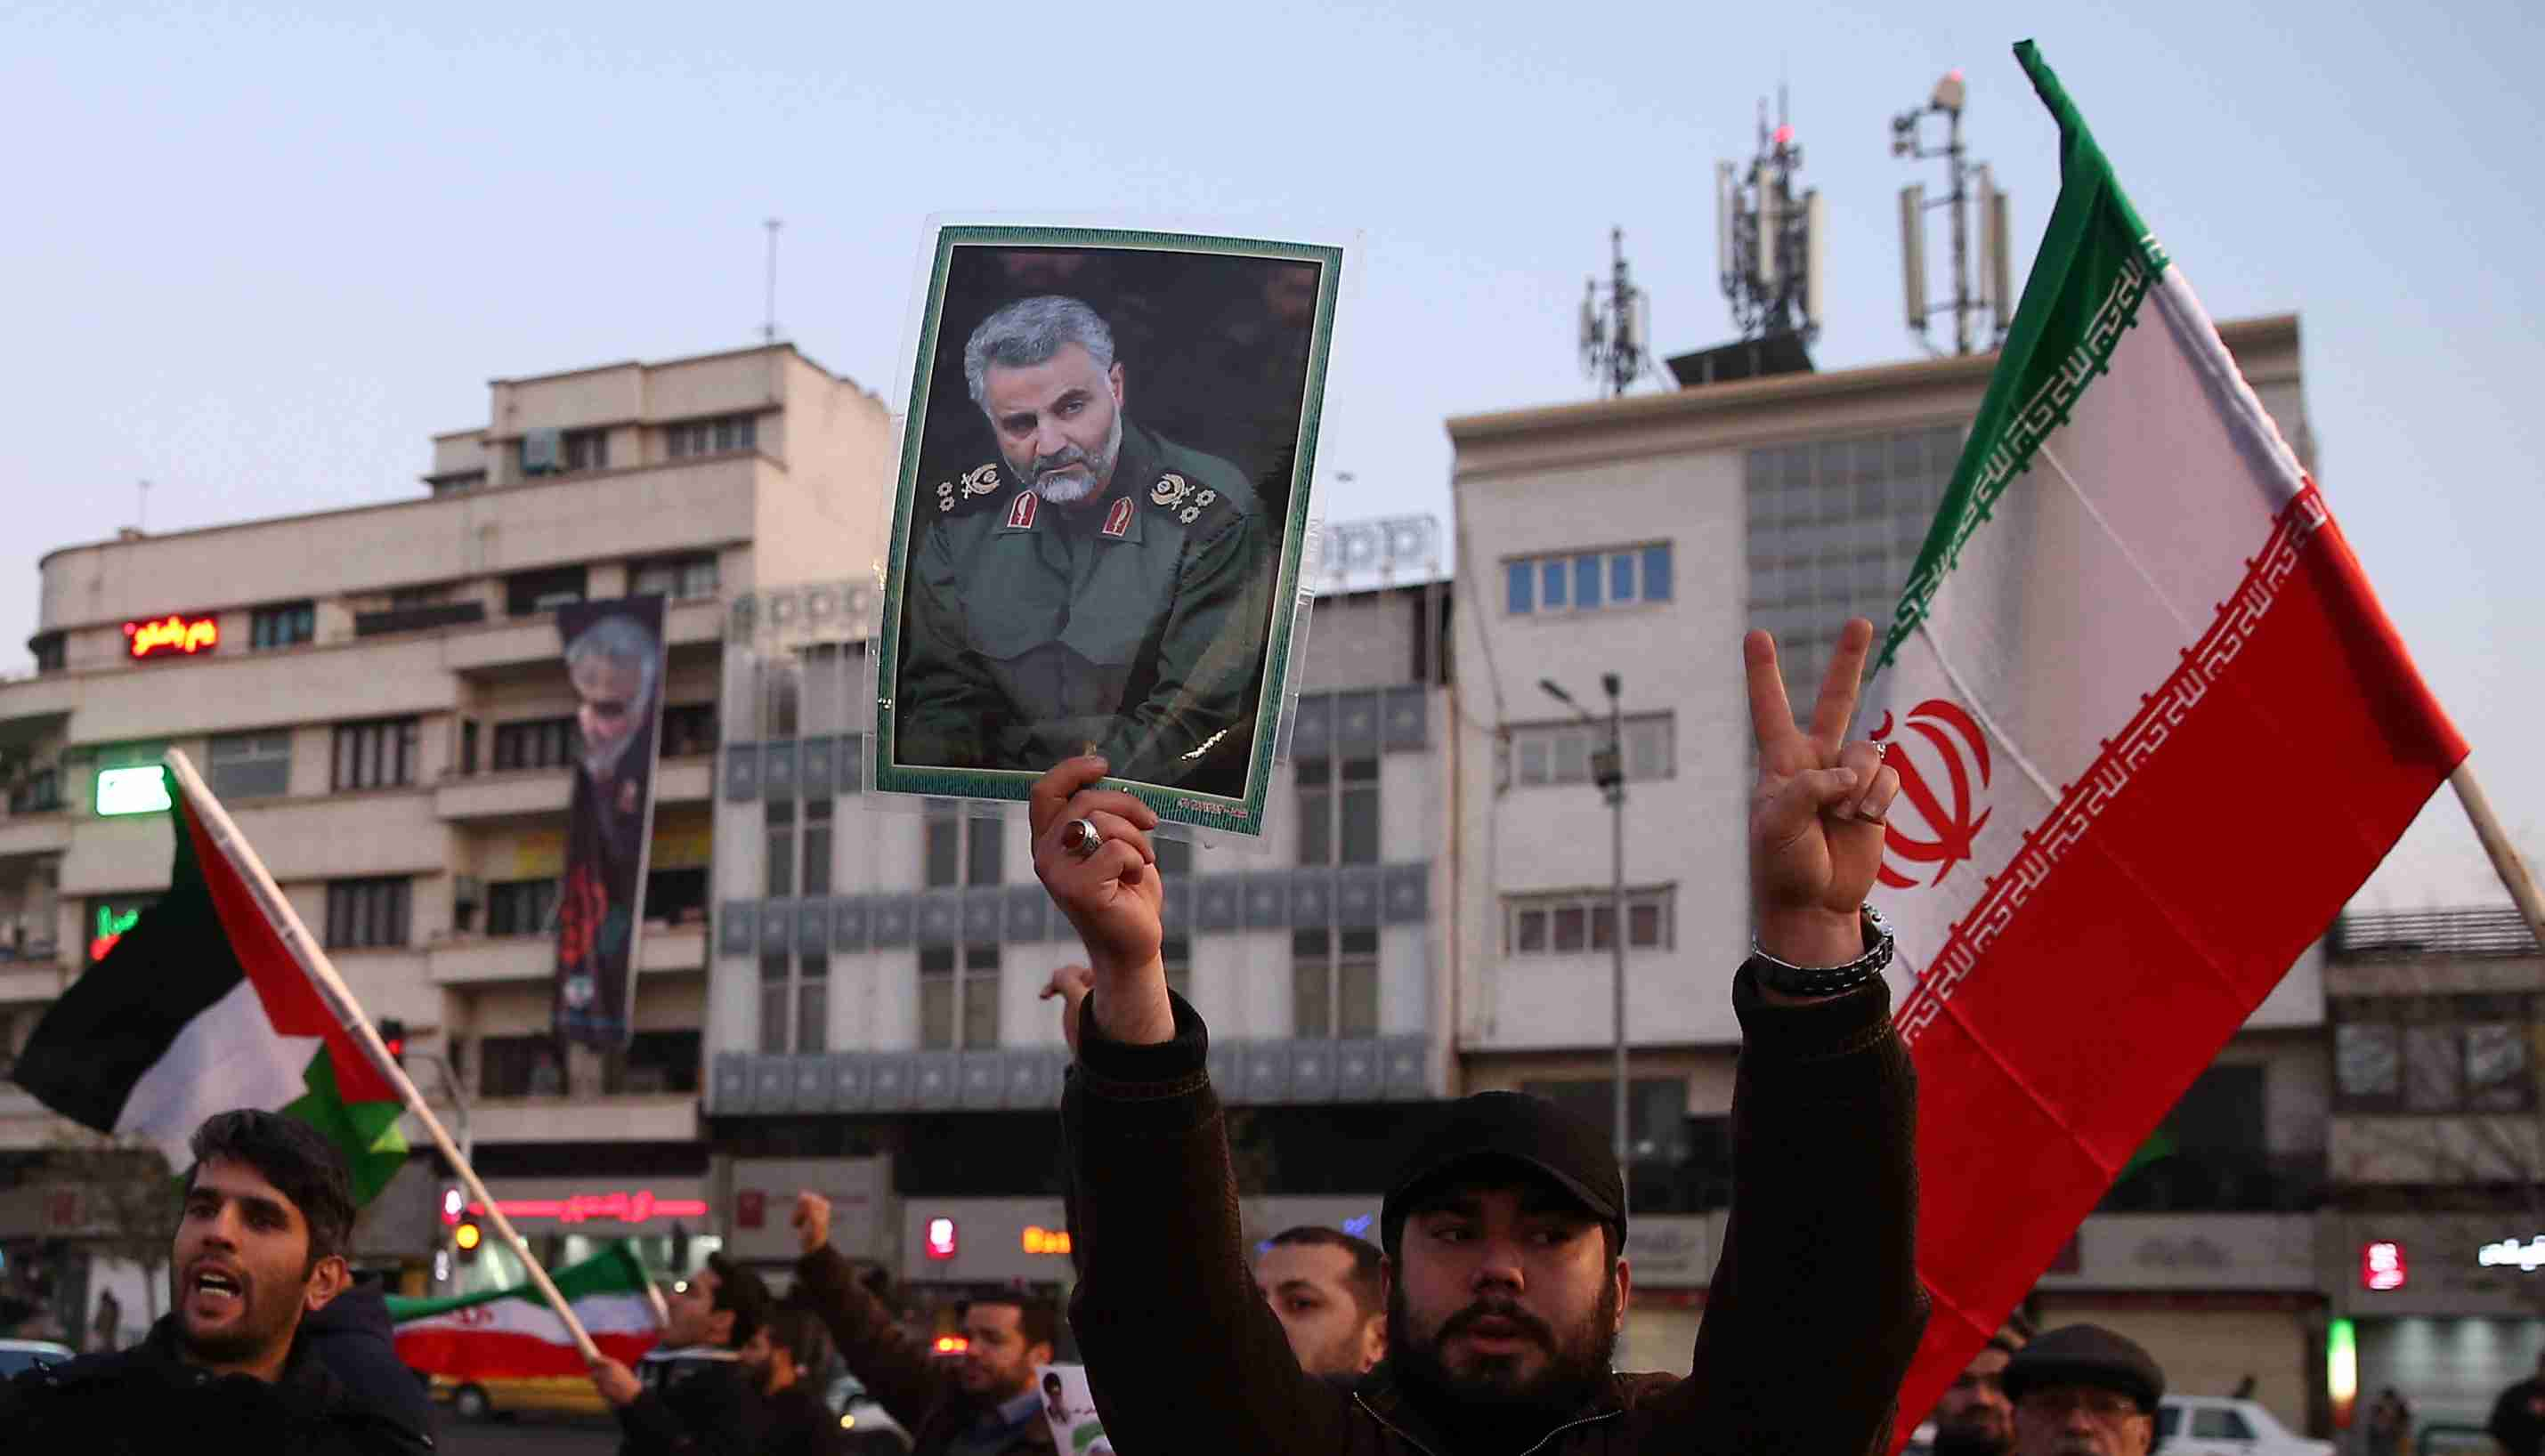 A man holds a picture of late Iranian Major-General Qassem Soleimani, as people celebrate in the street after Iran launched missiles at U.S.-led forces in Iraq, in Tehran, Iran January 8, 2020. Nazanin Tabatabaee/WANA (West Asia News Agency) via REUTERS ATTENTION EDITORS - THIS IMAGE HAS BEEN SUPPLIED BY A THIRD PARTY